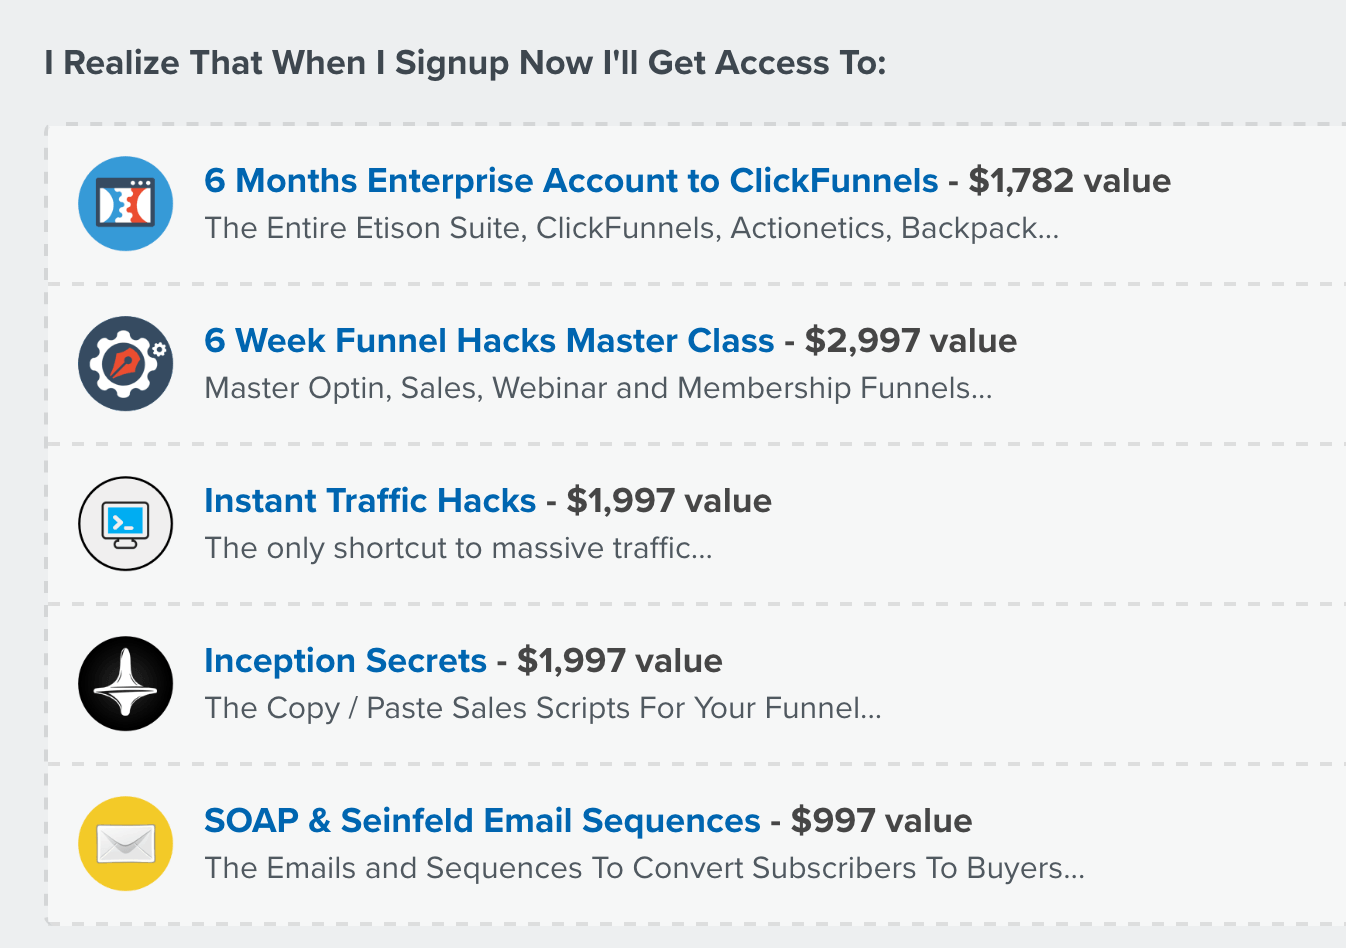 Clickfunnels Inception Secrets